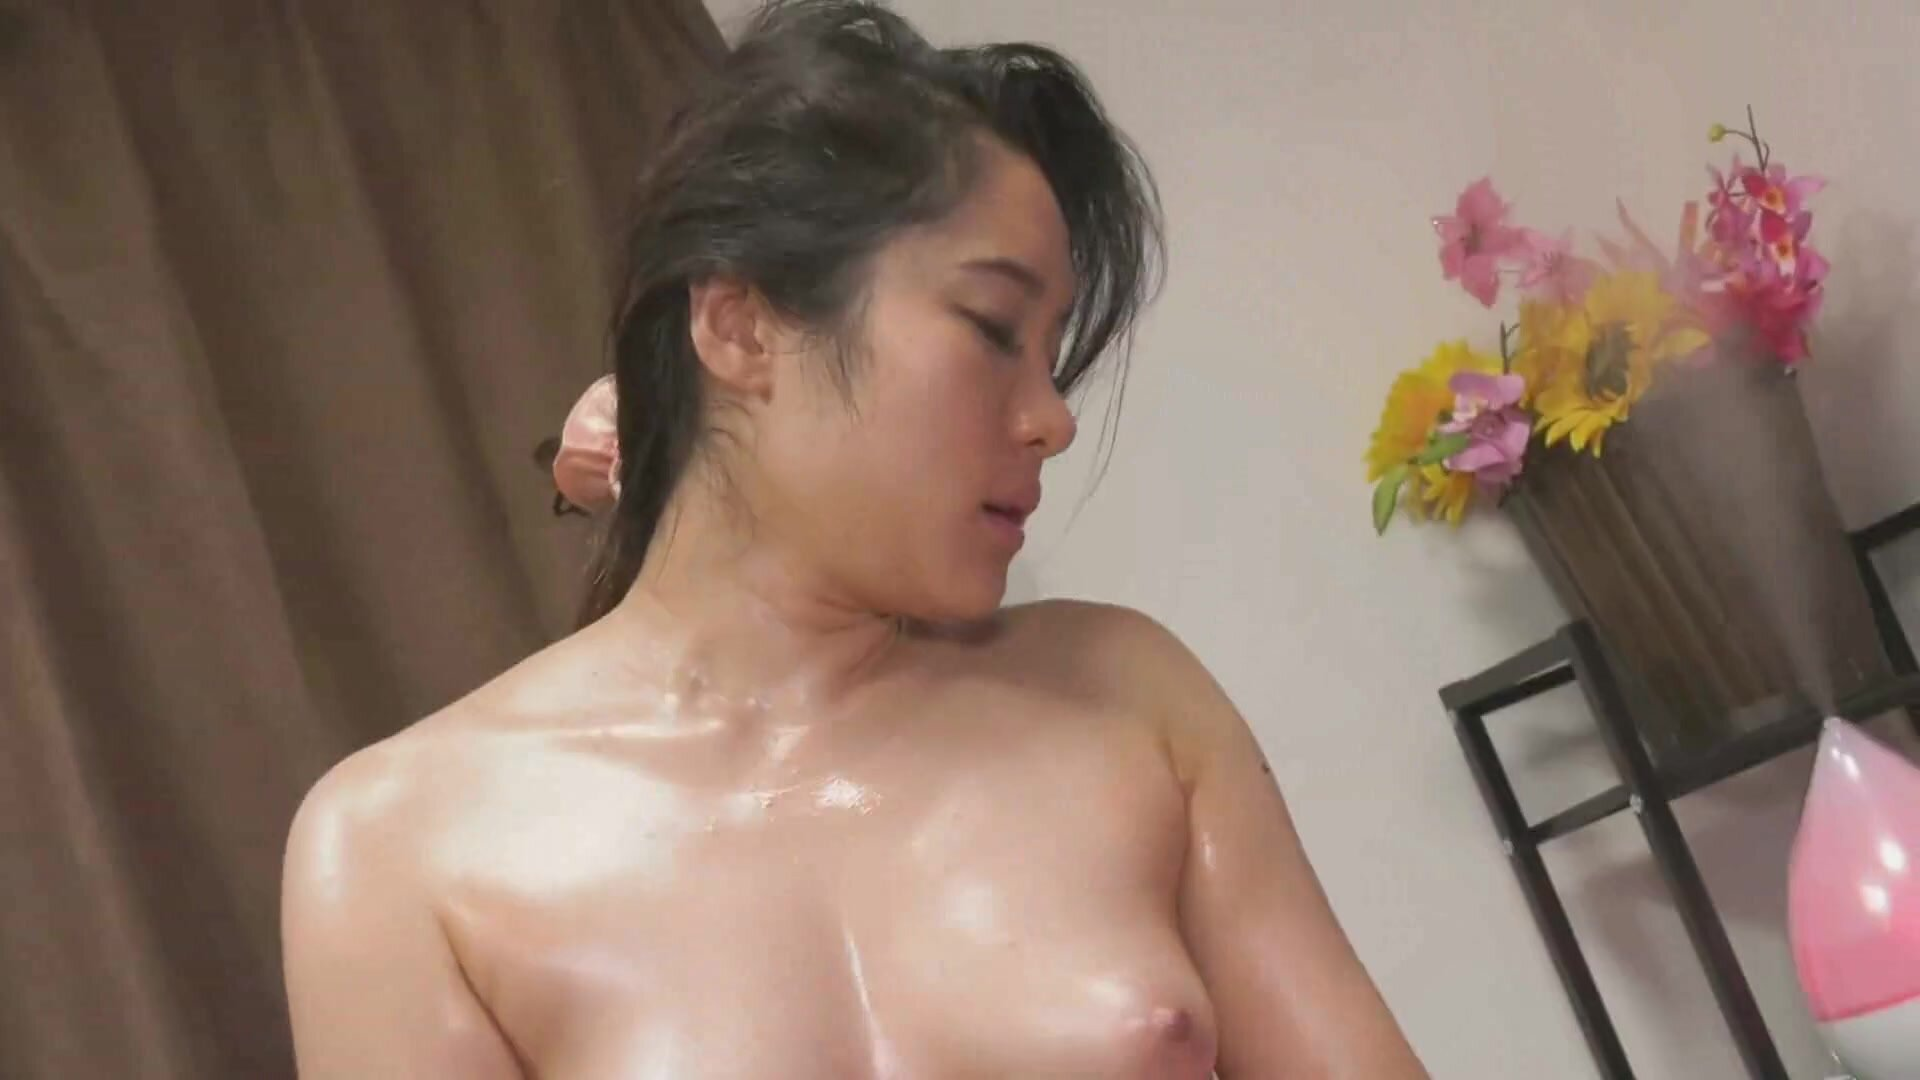 NATURAL MUSUME 021820 01 The Store Assistant Who Can T Stand The Masseuse S Thick And Superb Technique